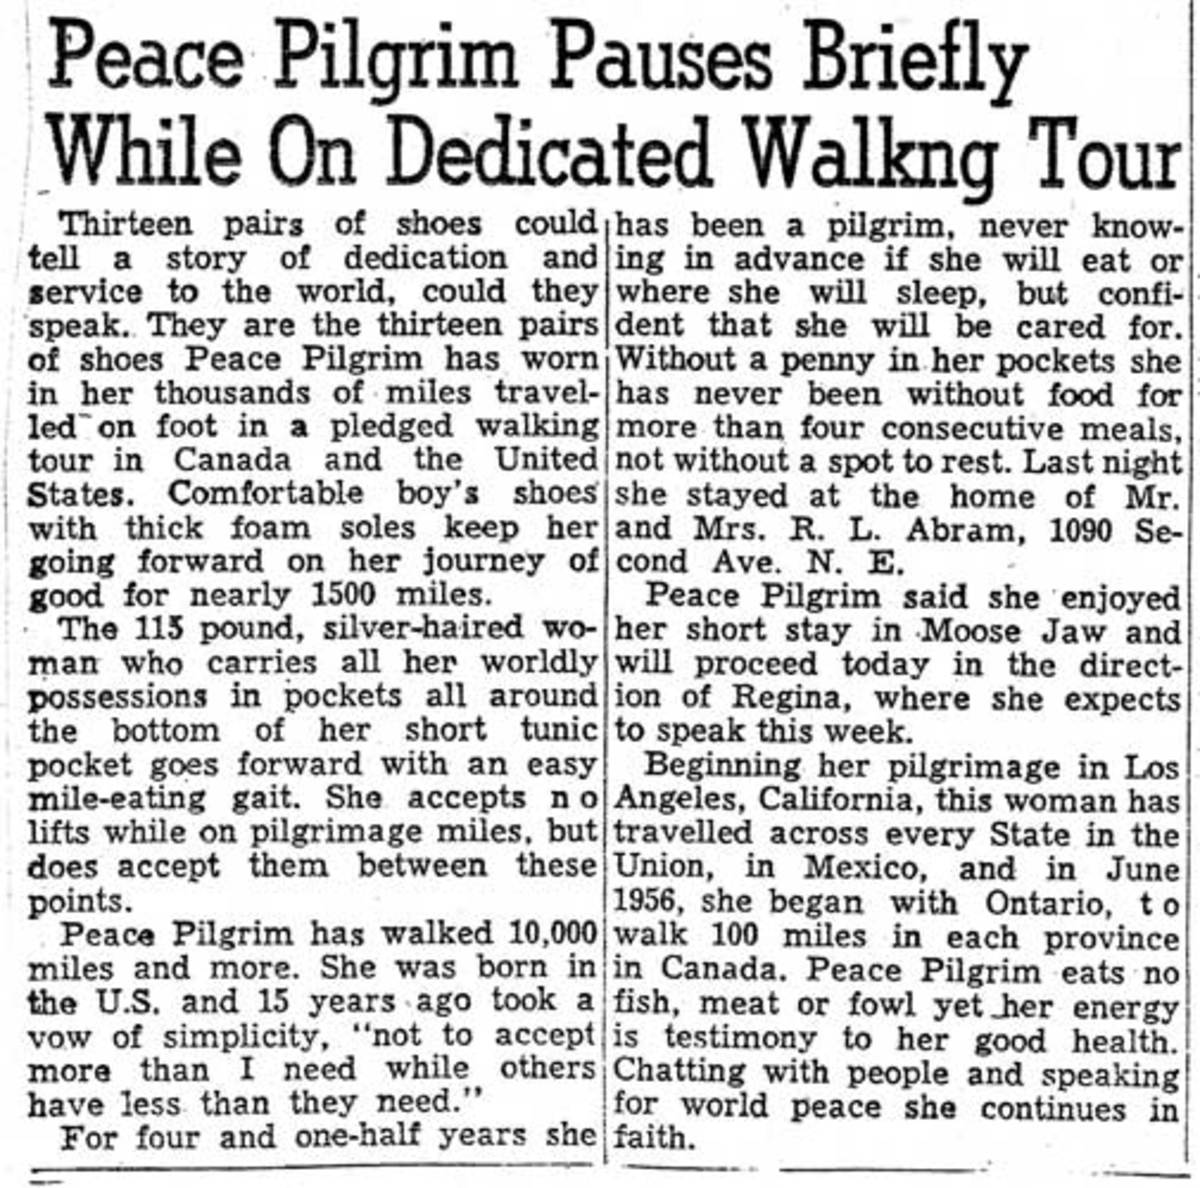 Newspaper article about Peace Pilgrim